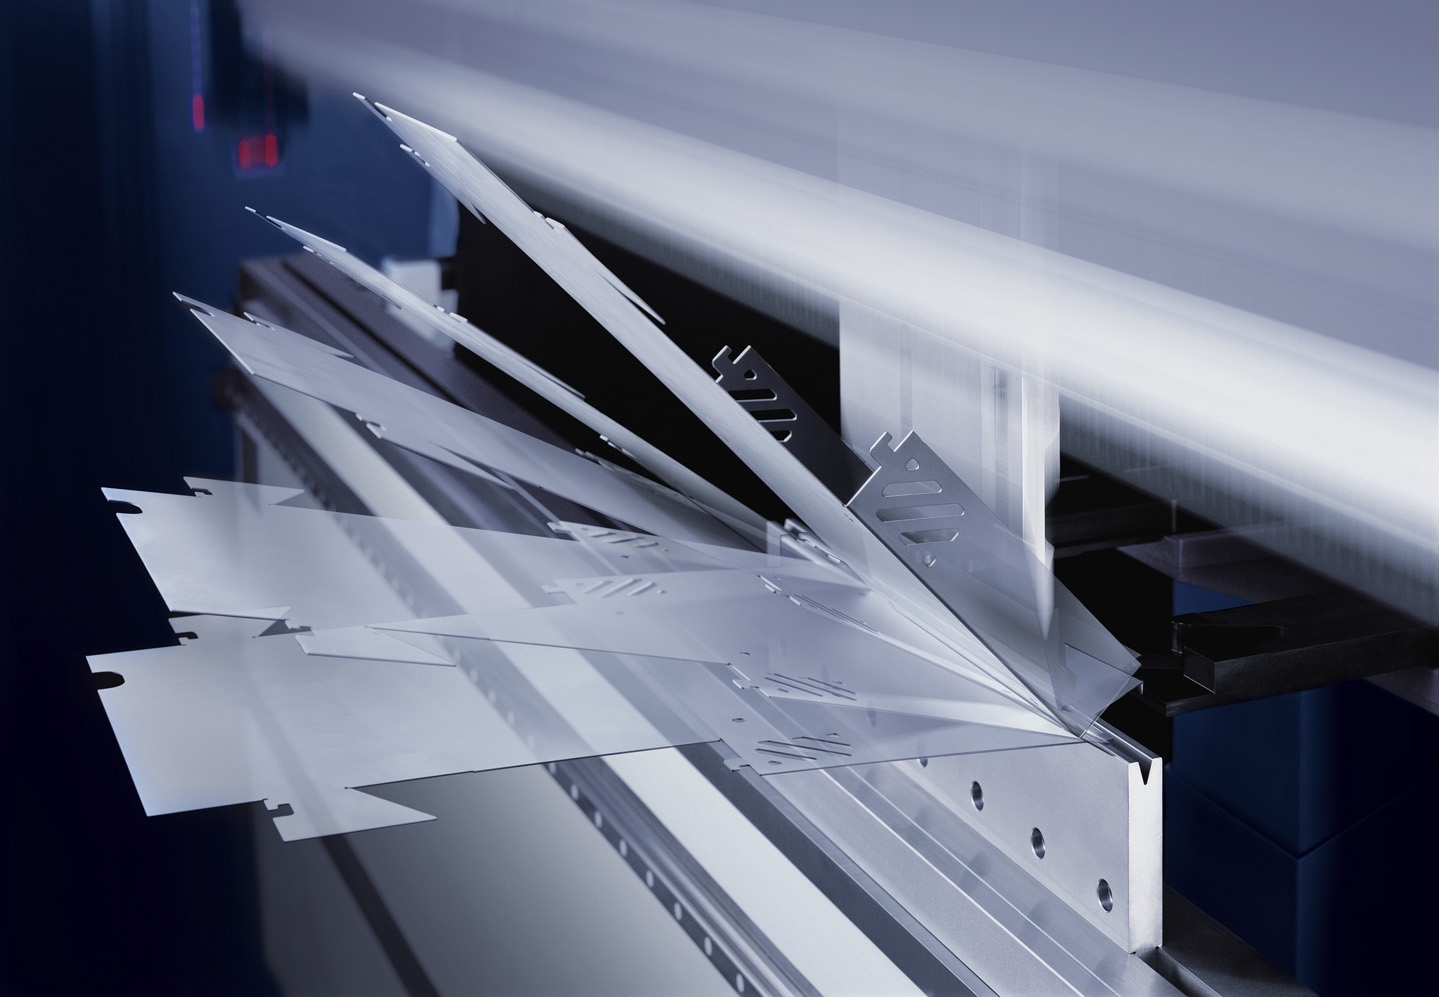 Marlin Steel Wire Products Acquires Trumpf Trubend Press